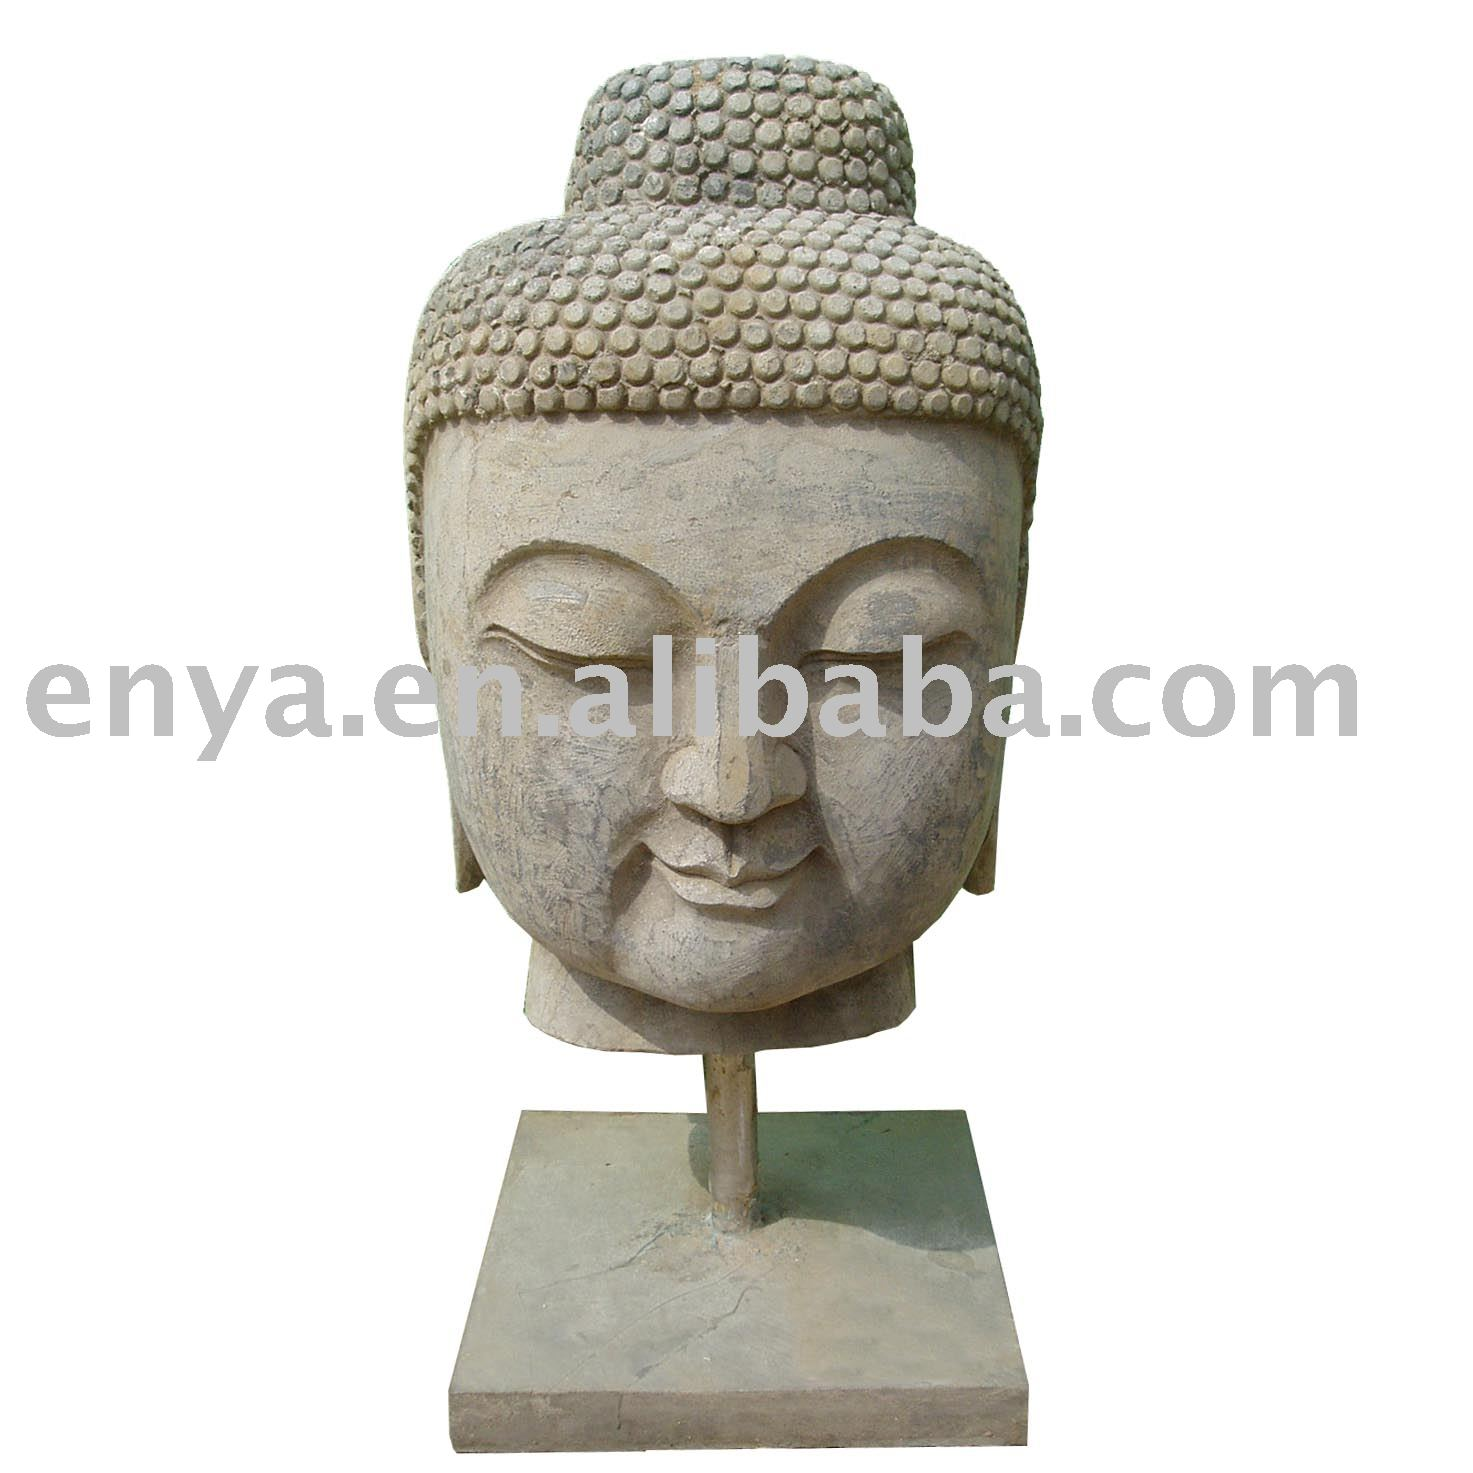 Buddha Head Statue, Stone Carving Sculpture, religious figure